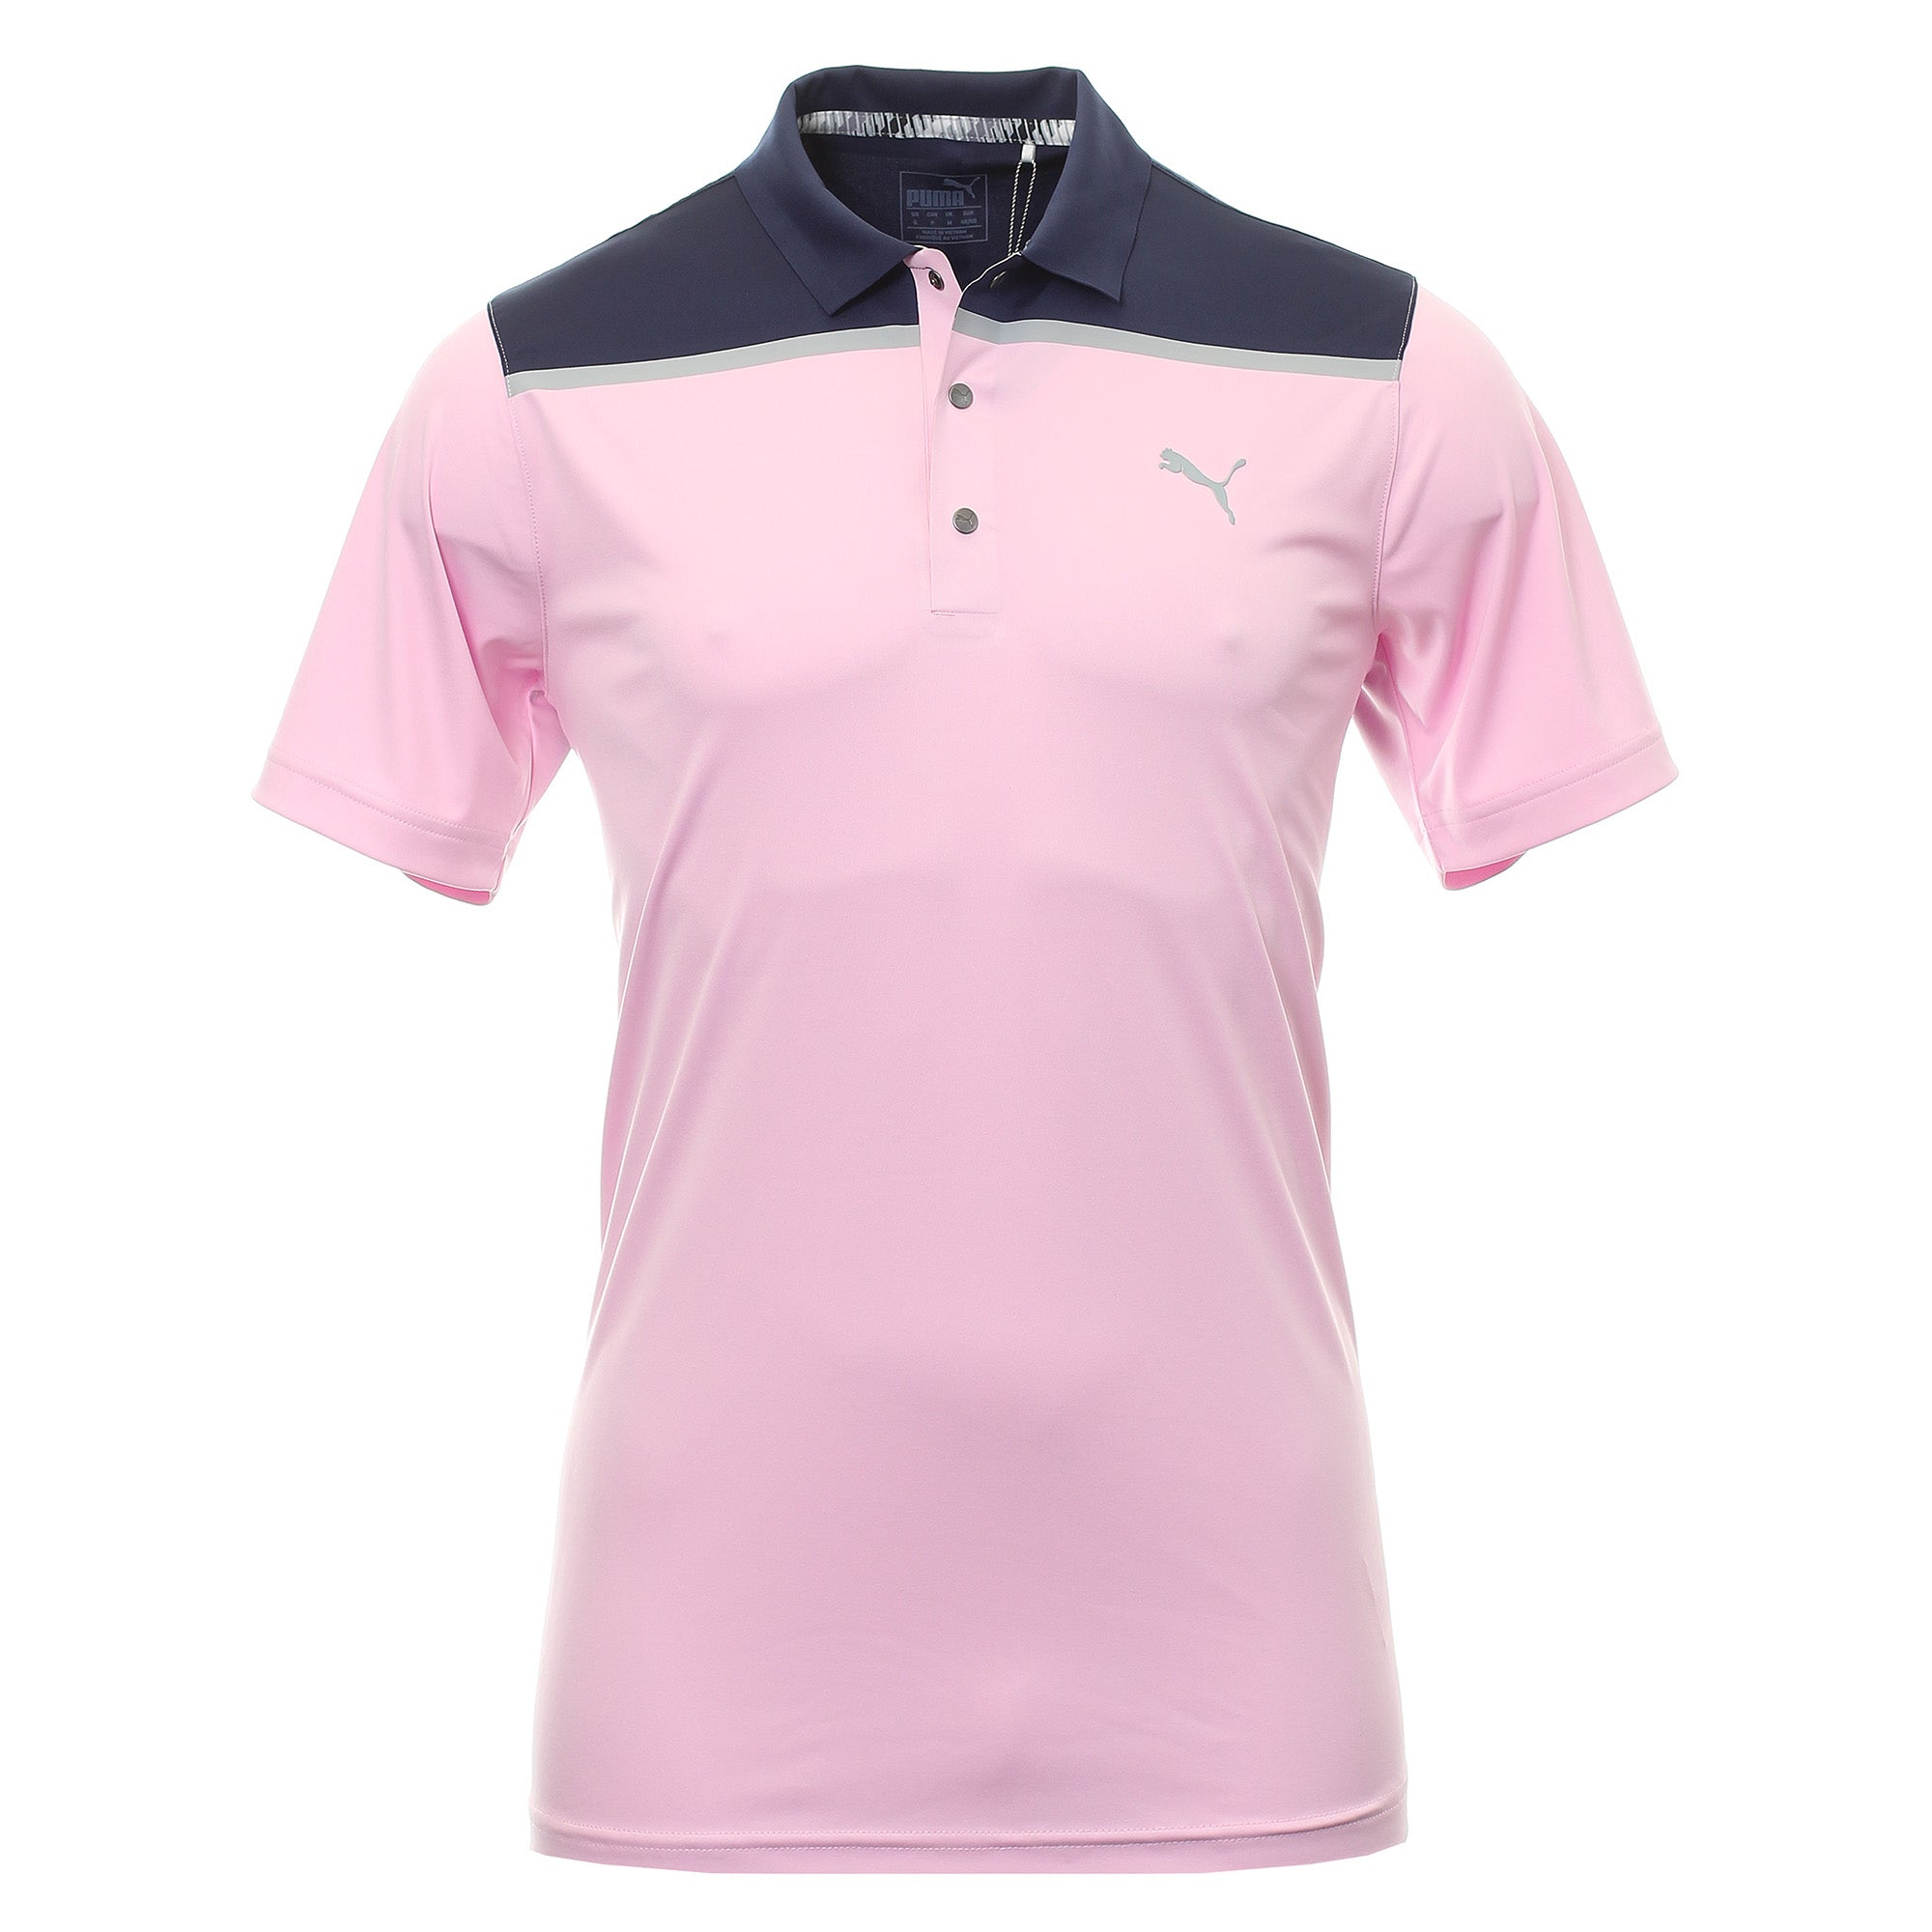 Puma Golf Bonded Colourblock Polo Shirt 577876